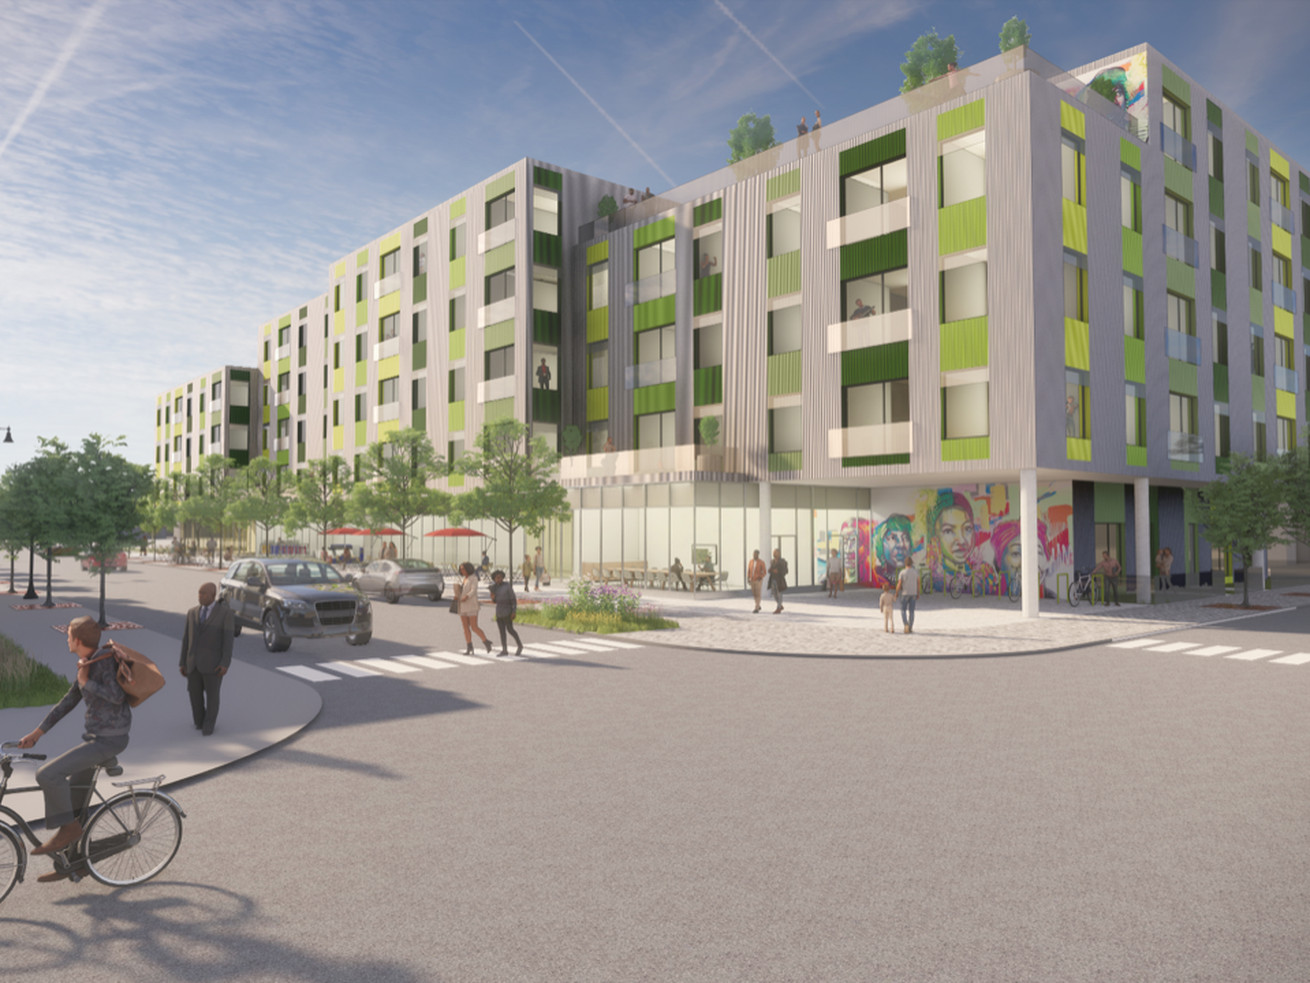 A rendering of a planned affordable housing development in Auburn Gresham